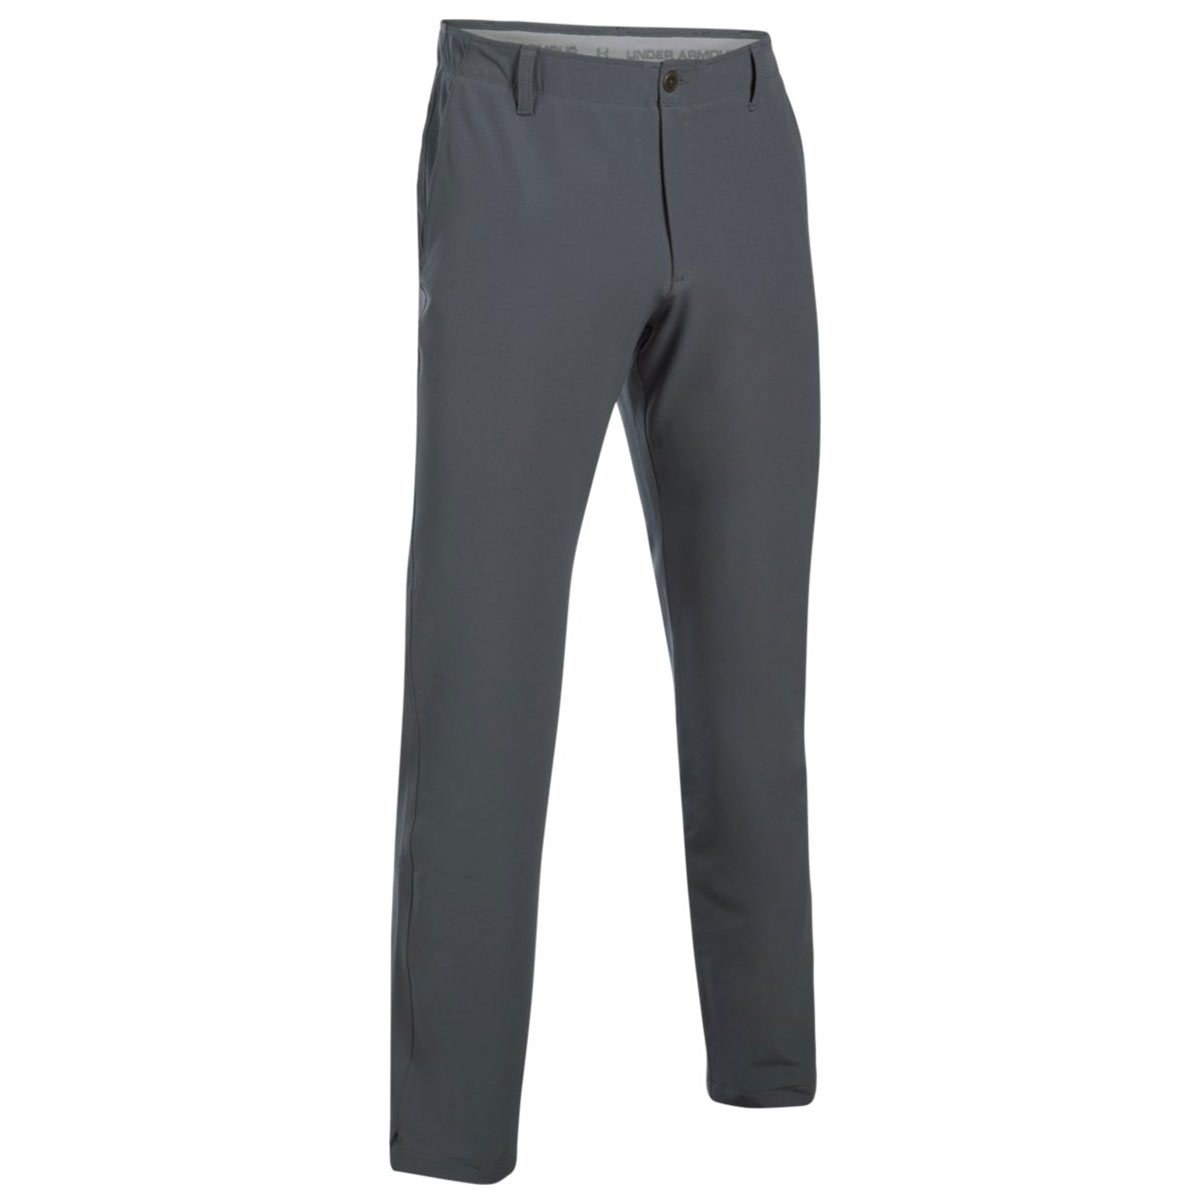 Under-Armour-Mens-Match-Play-ColdGear-Infrared-Taper-Golf-Trousers-52-OFF-RRP thumbnail 20